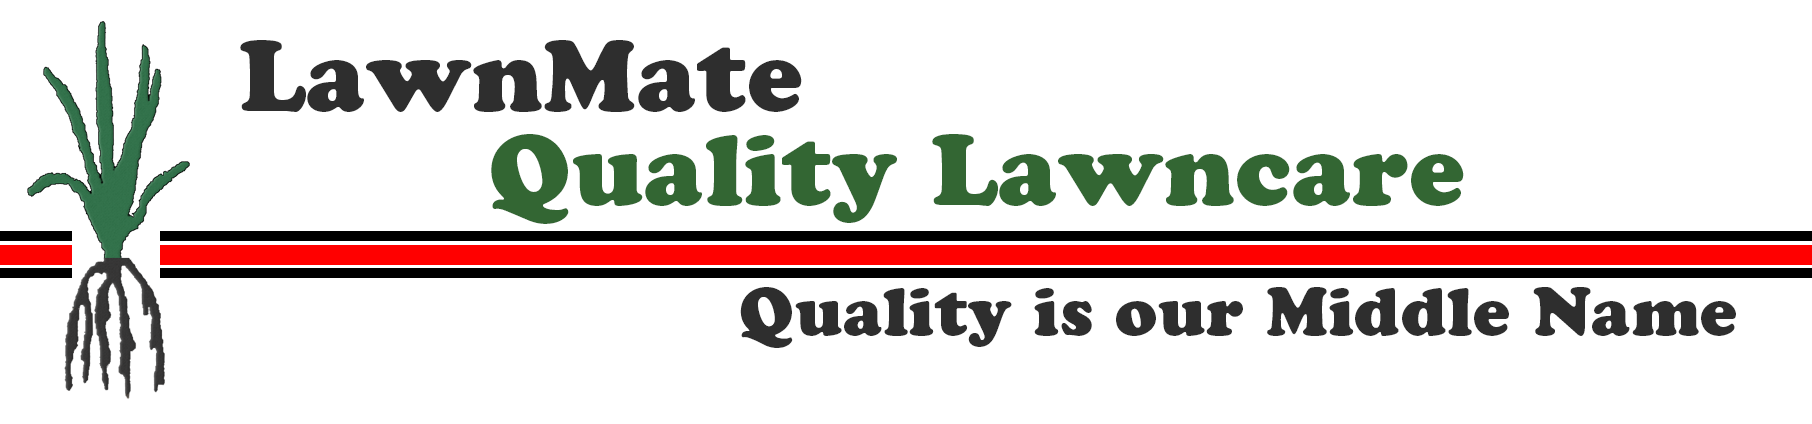 LawnMate Quality Lawncare